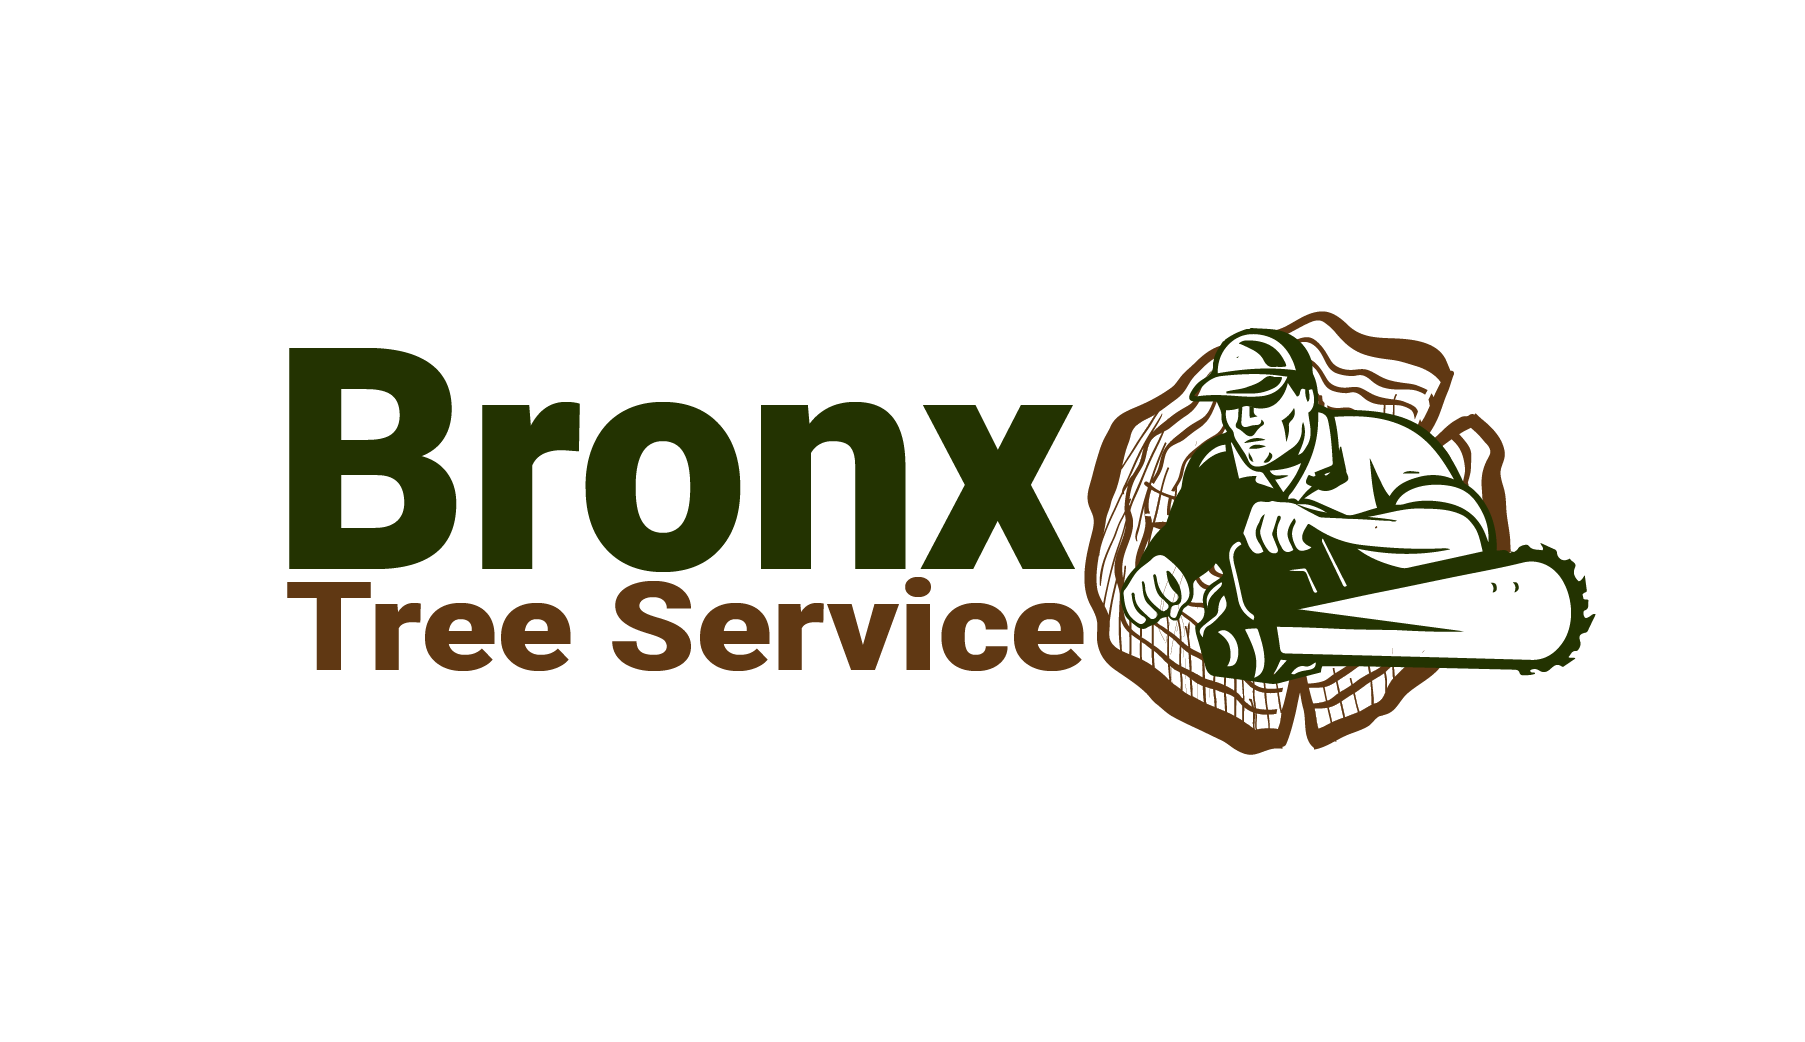 Eddie's Bronx Tree Removal is Offering Excellent Tree Services in Bronx, New York